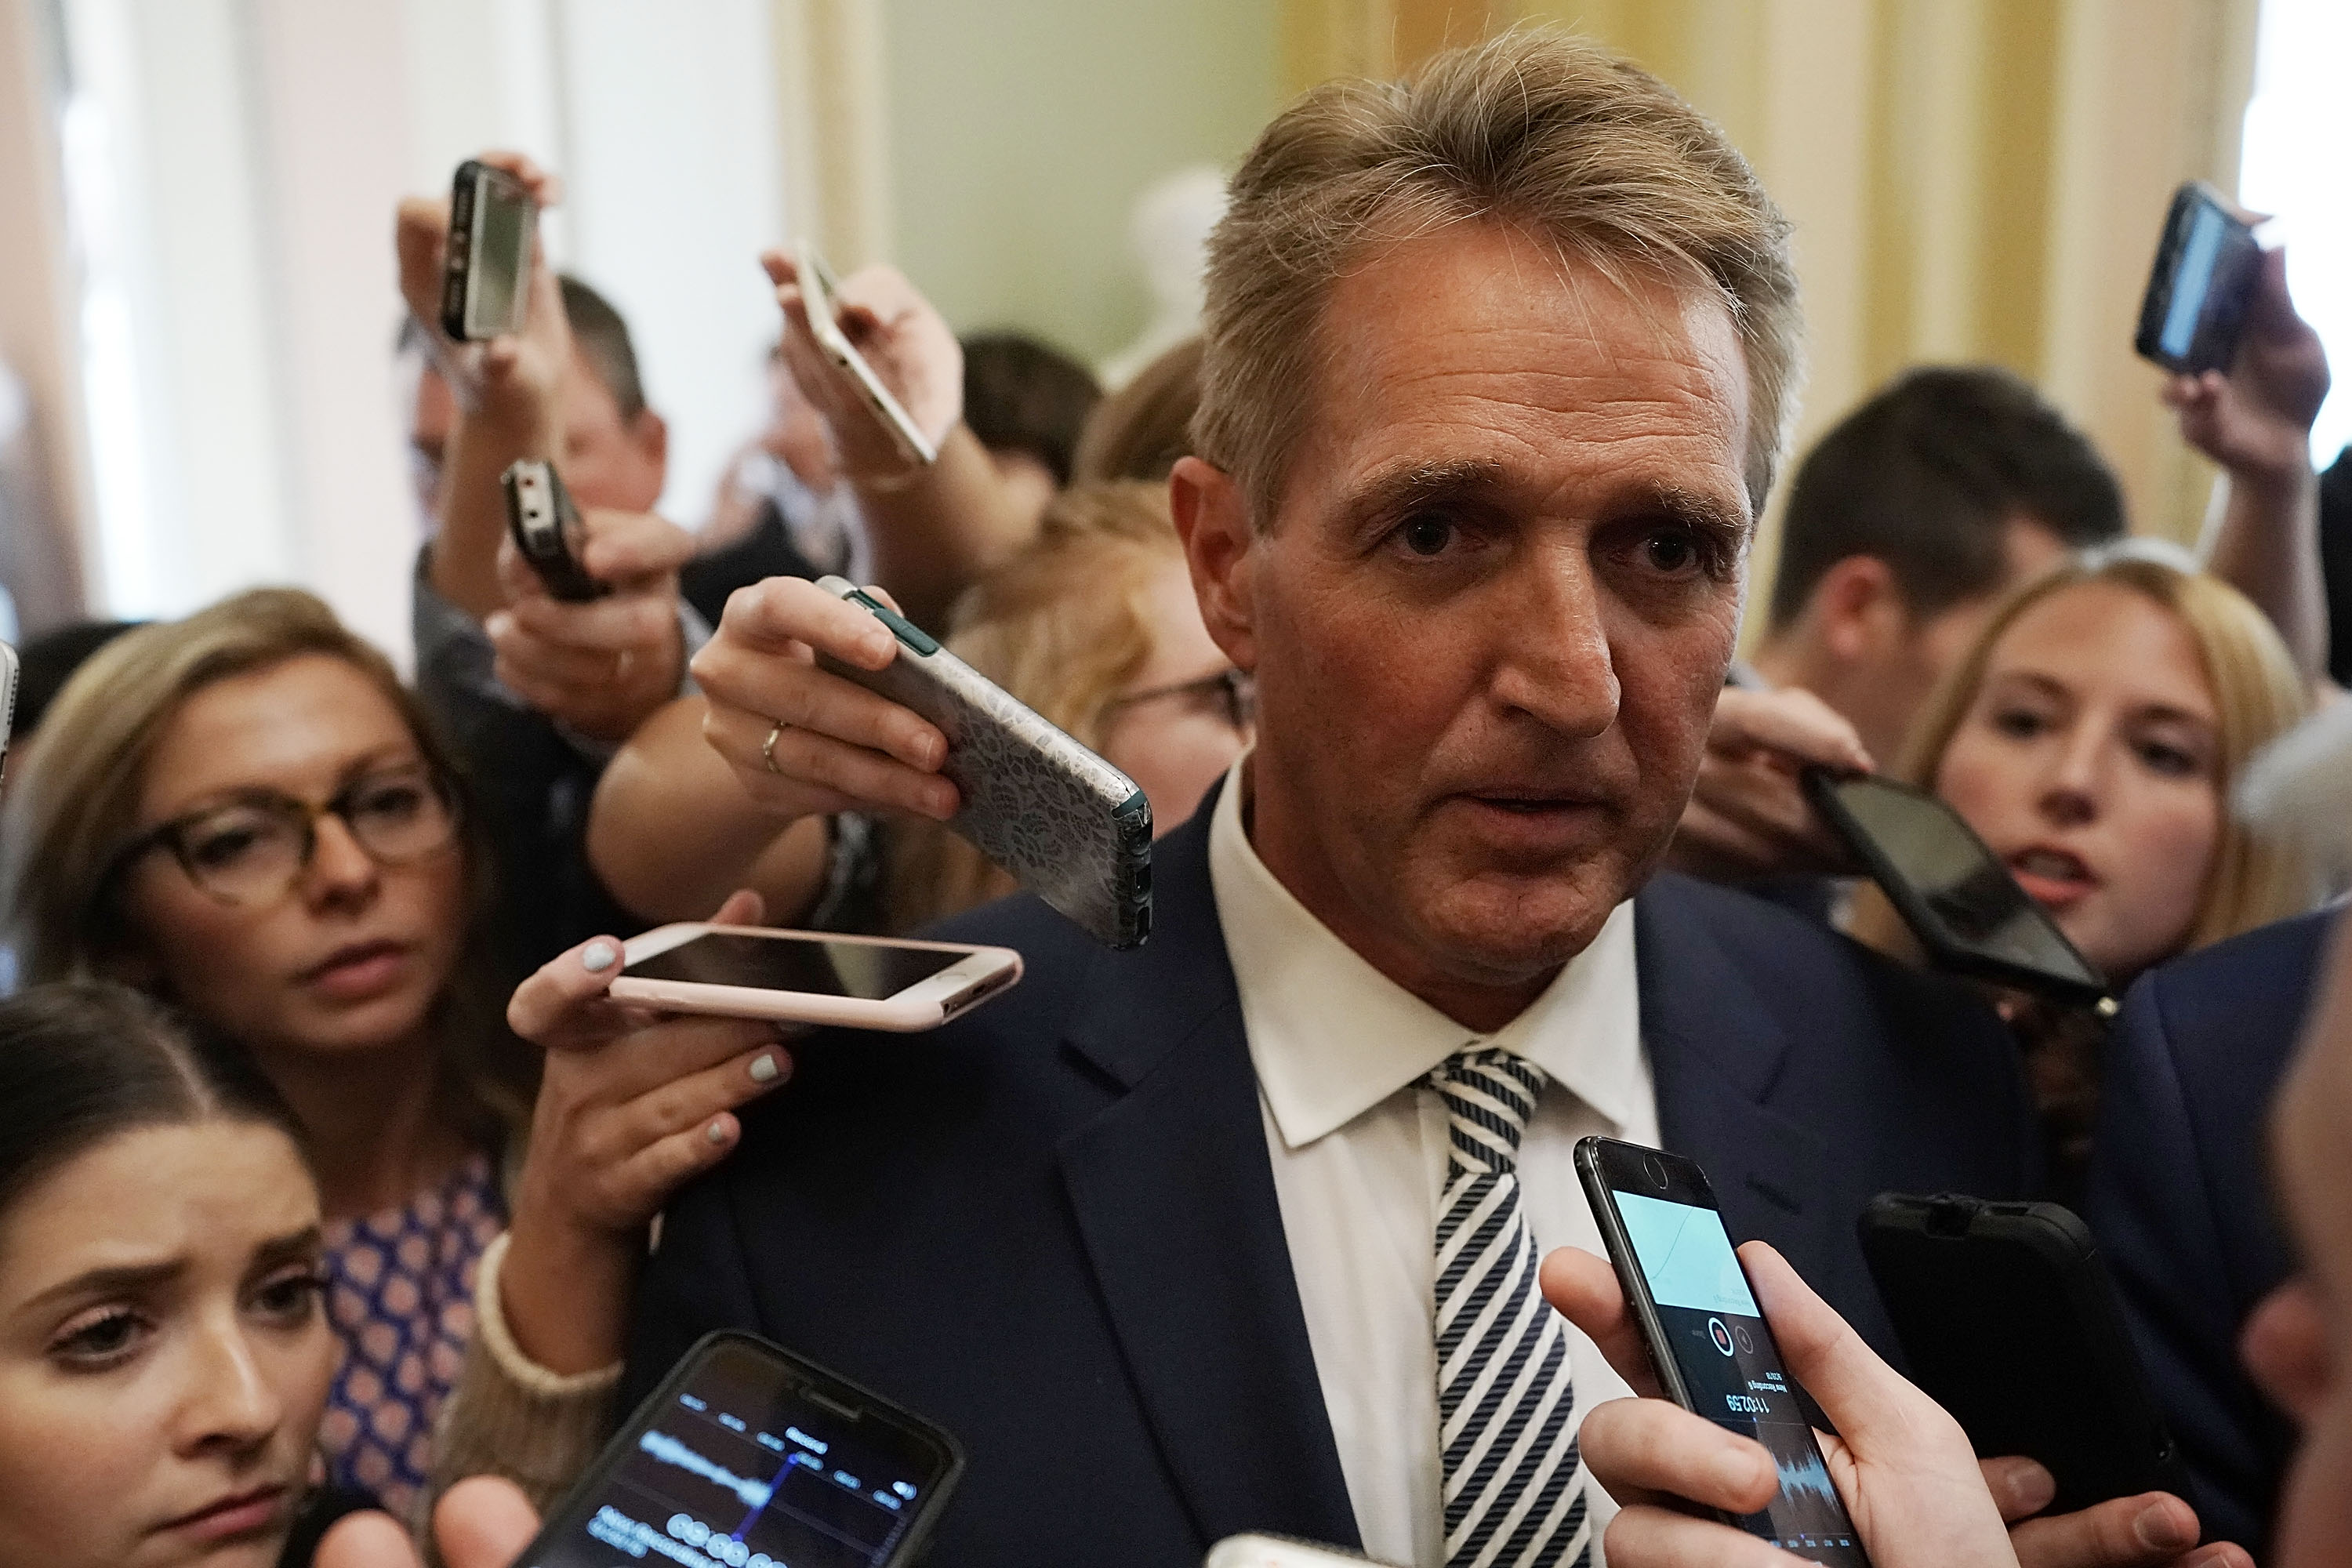 Sen. Jeff Flake announces he plans to vote yes on Kavanaugh